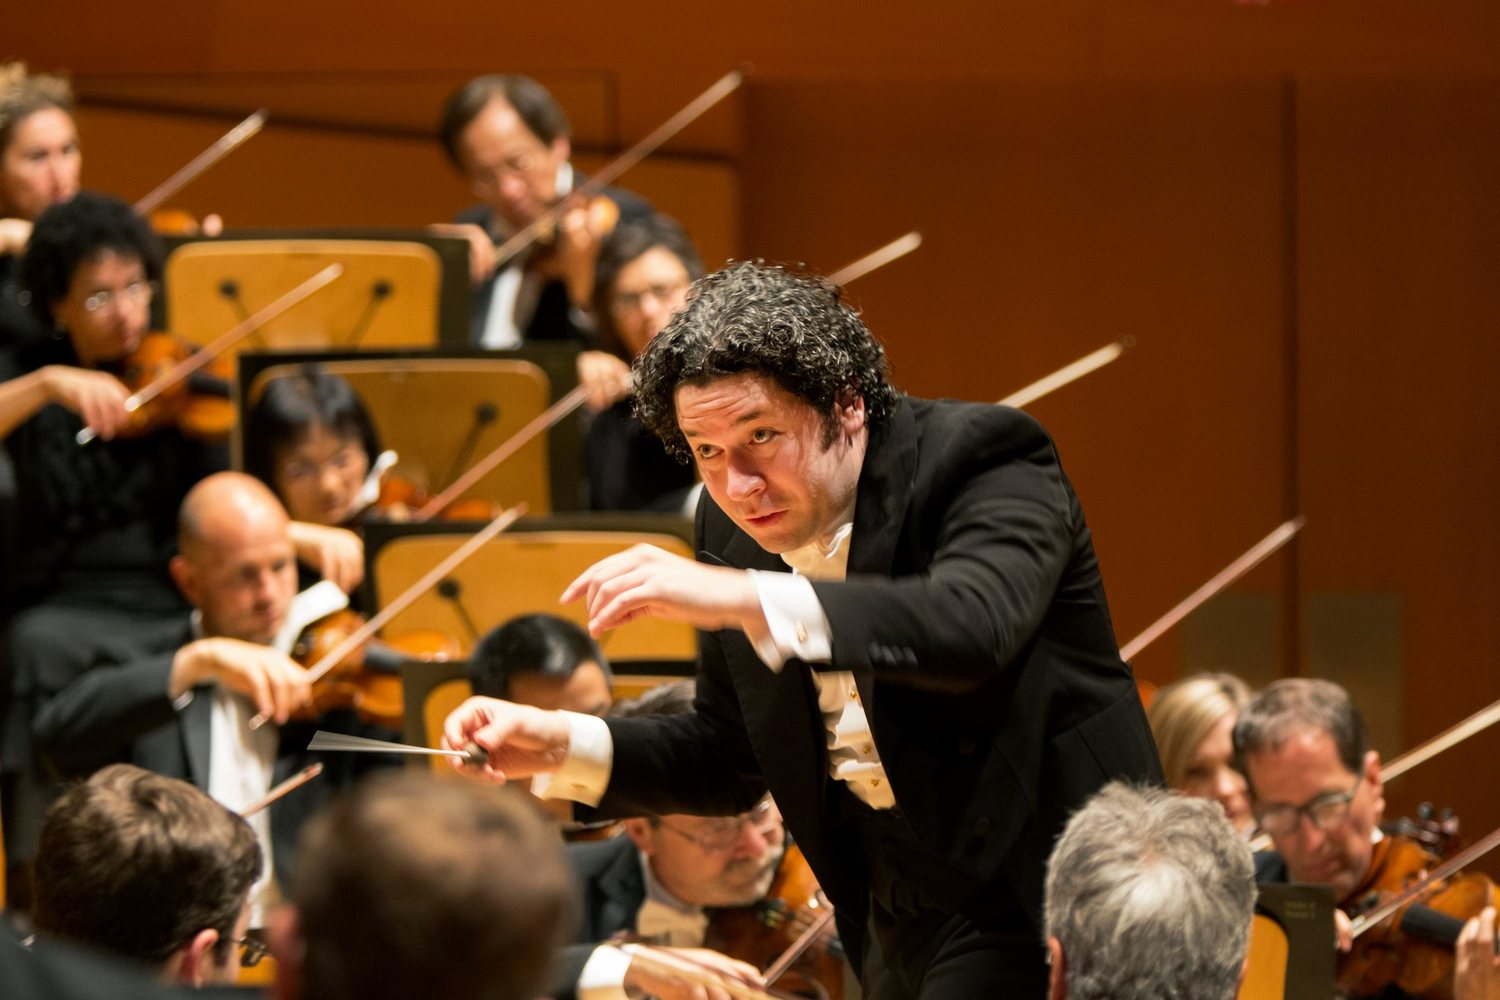 BWW Review: The Los Angeles Philharmonic at Disney Hall